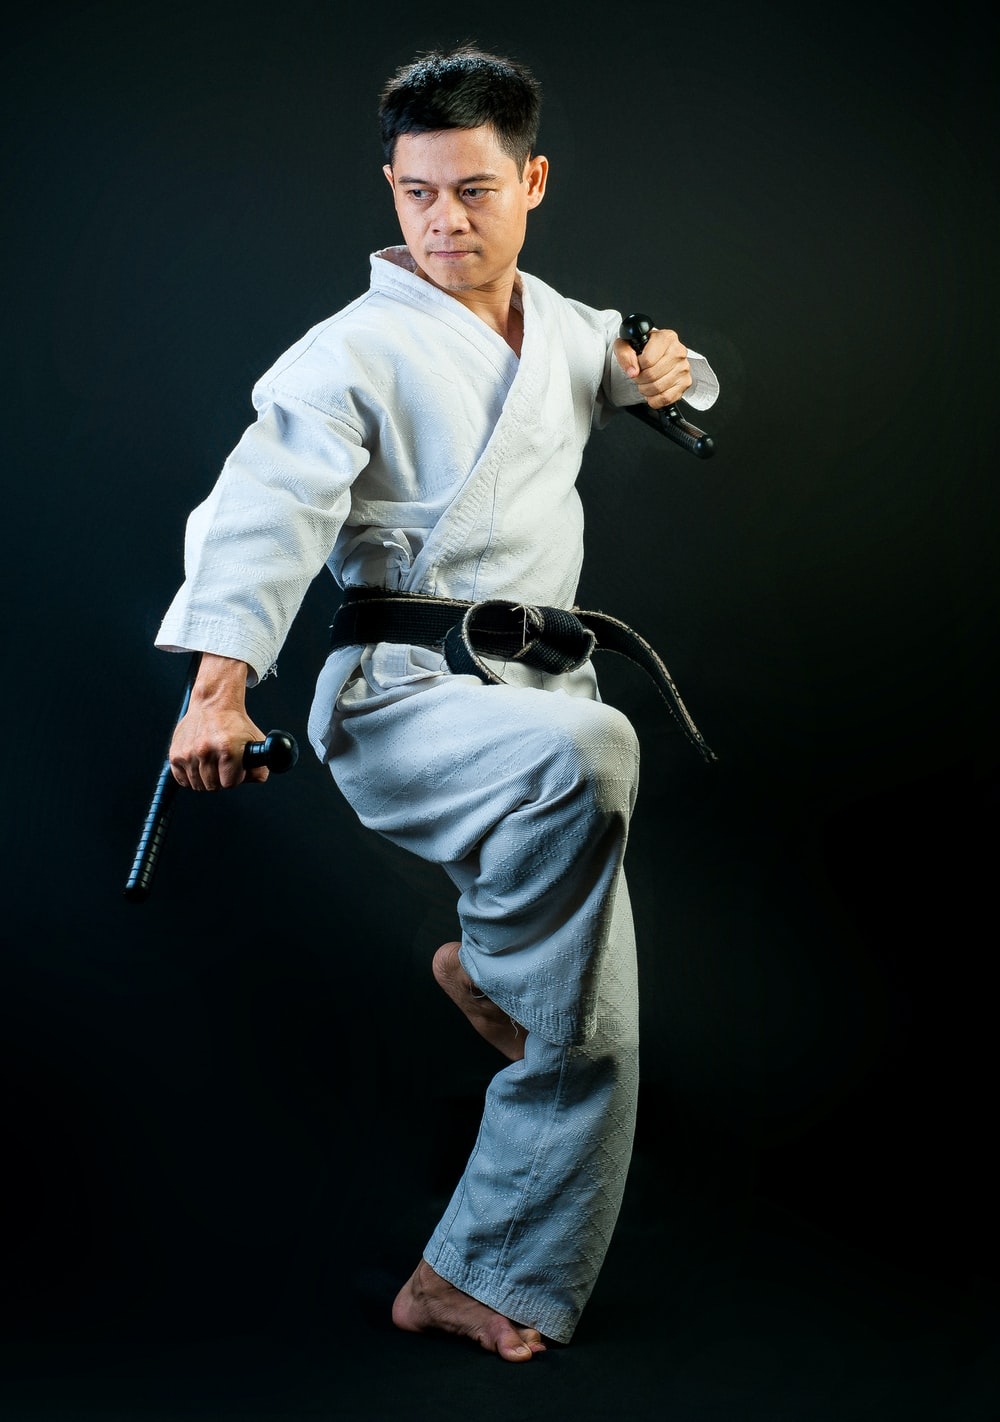 Black belt martial artist standing with one leg